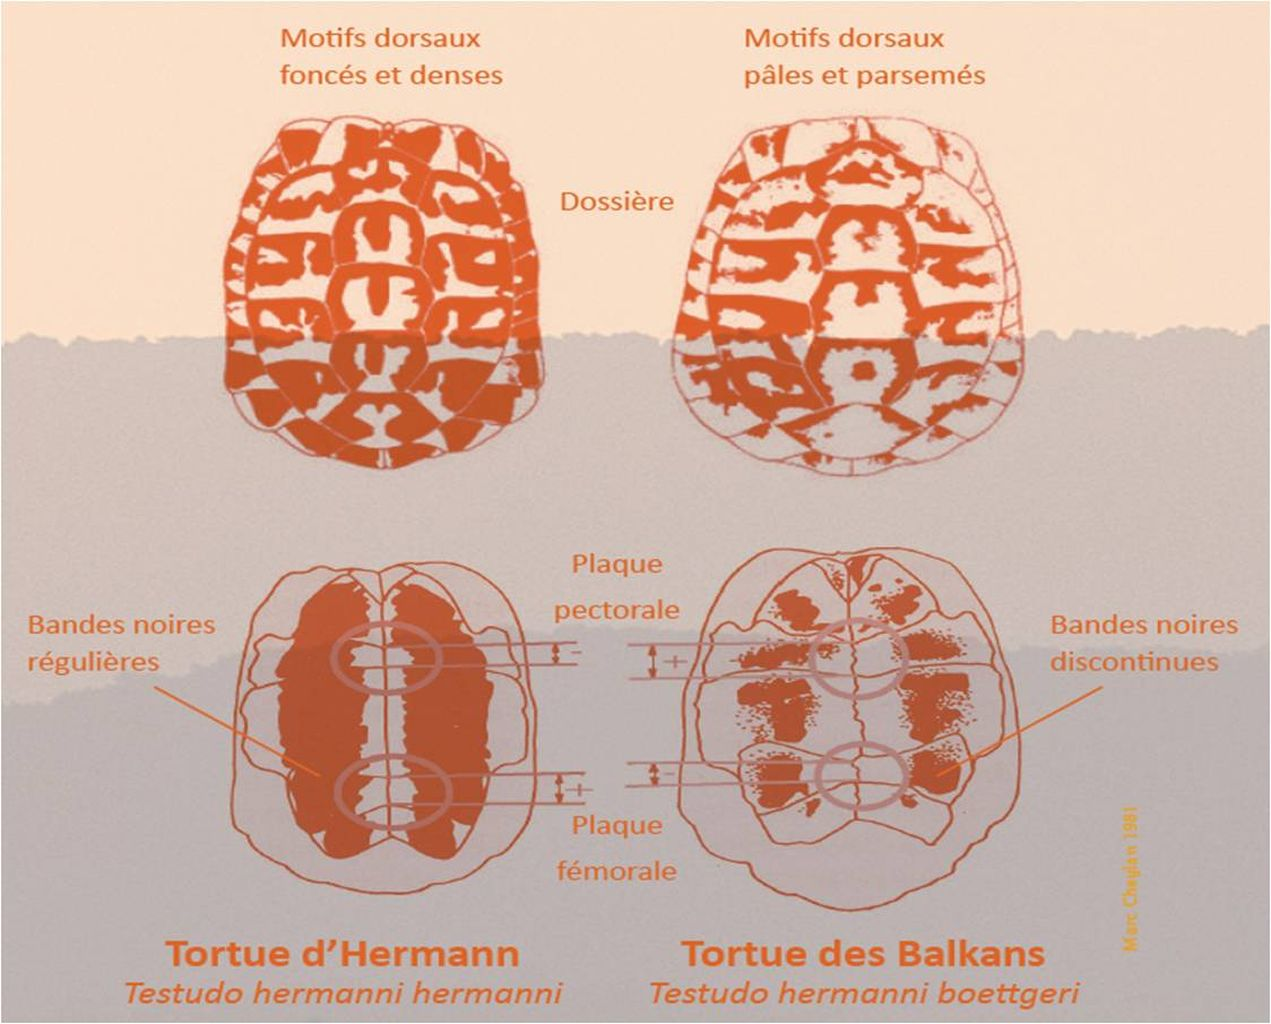 Life_tortue_hermann_81_difference_sous_espece_hermanni_boettgeri.jpg